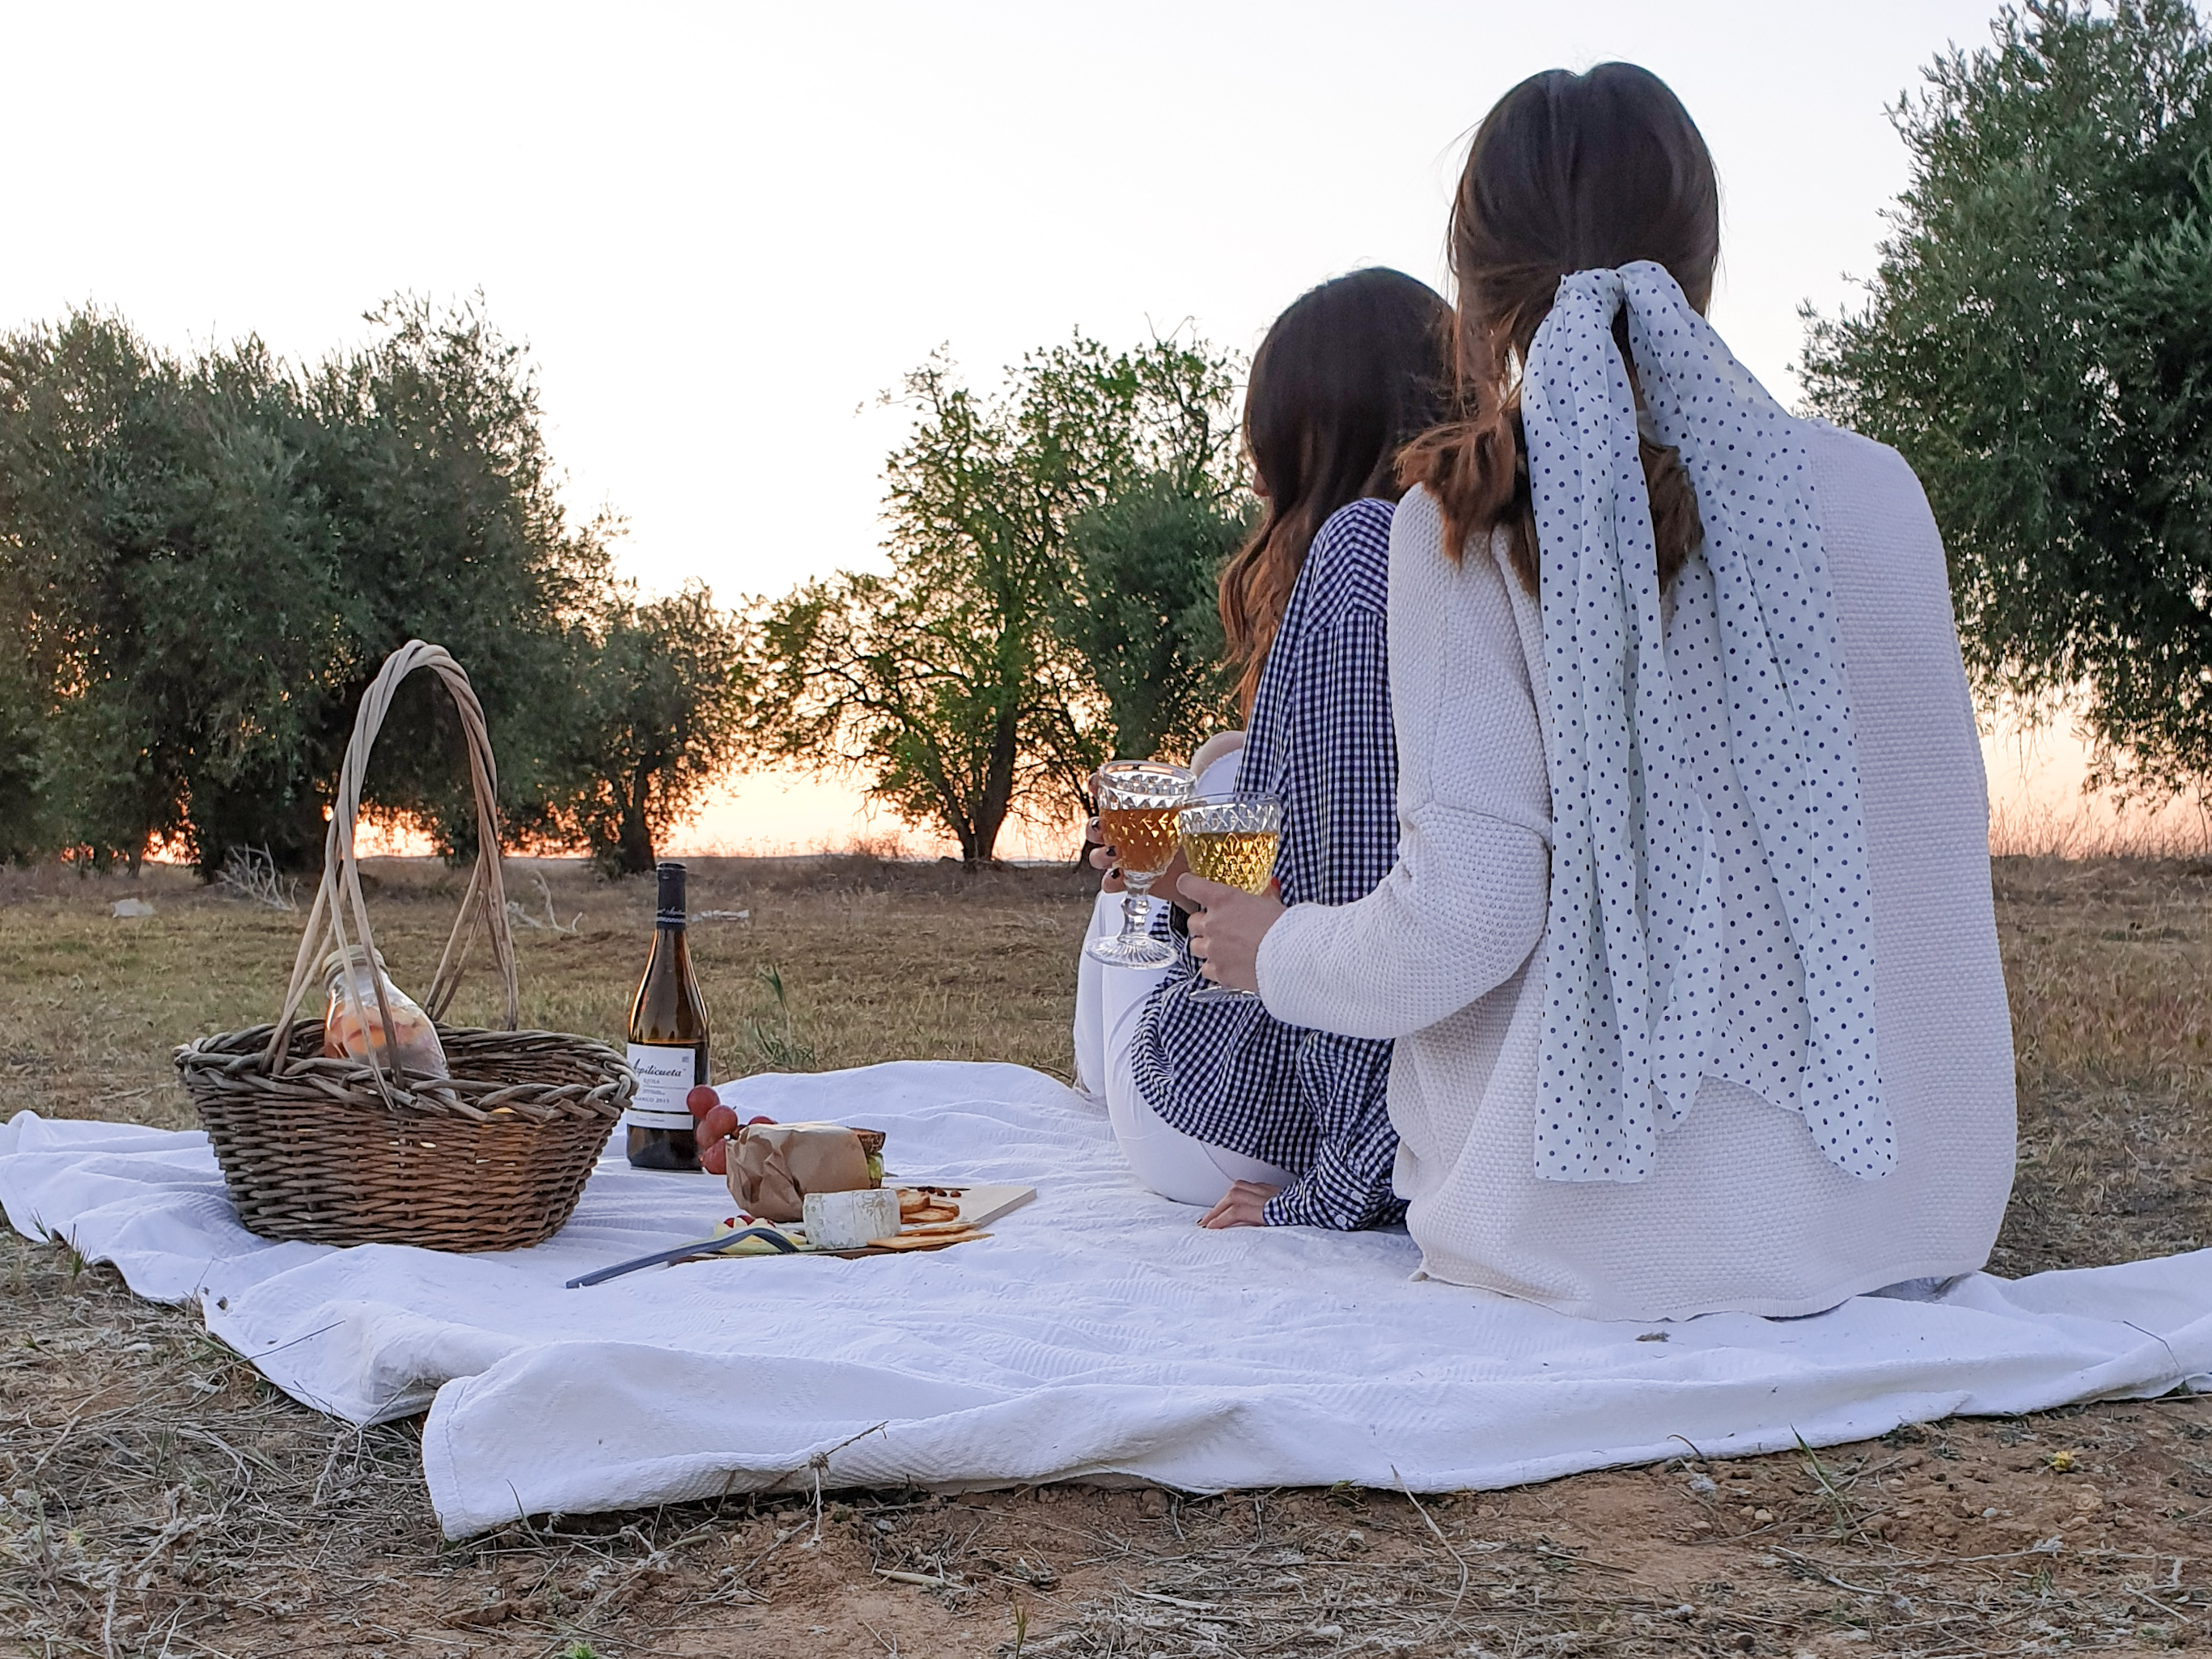 Picnic with Enttereza